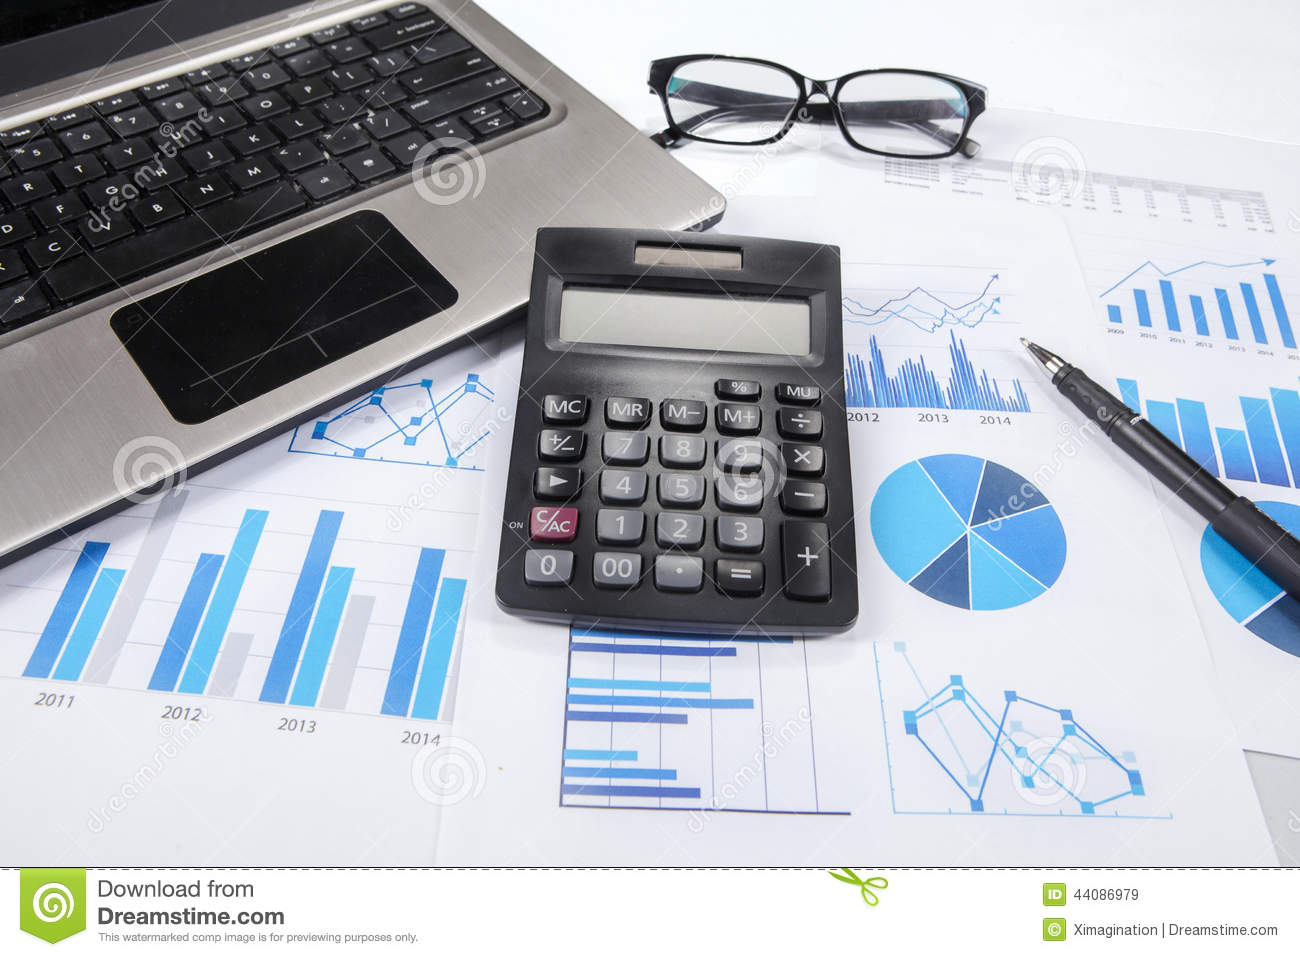 financial research The office of financial research (ofr) helps to promote financial stability by  looking across the financial system to measure and analyze risks, perform.